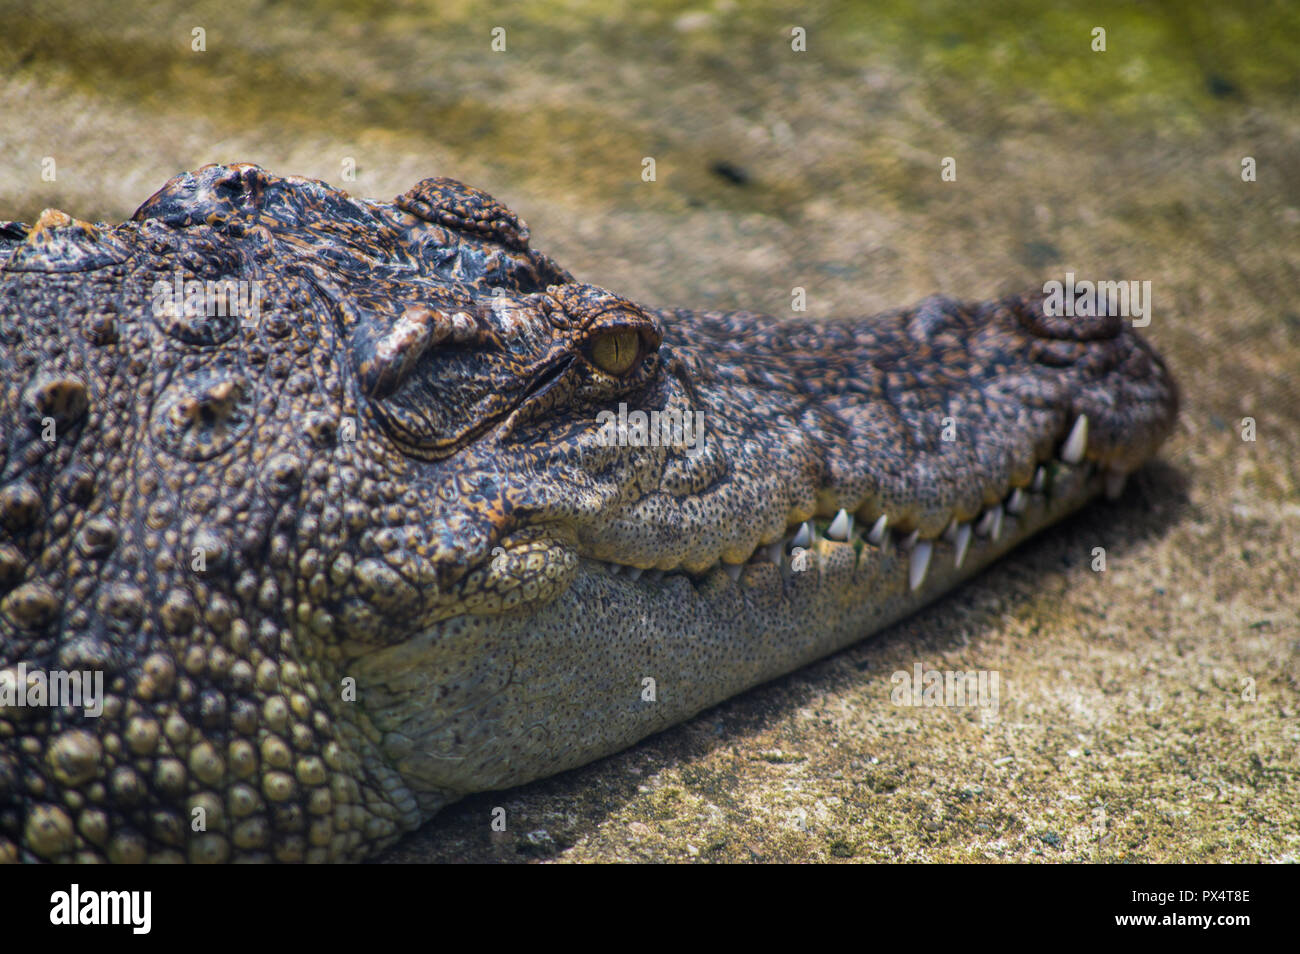 Chiang Mai, Thailand - July 1, 2018 :  At Chiang Mai Zoo,  crocodile resting on the ground Close-up. - Stock Image